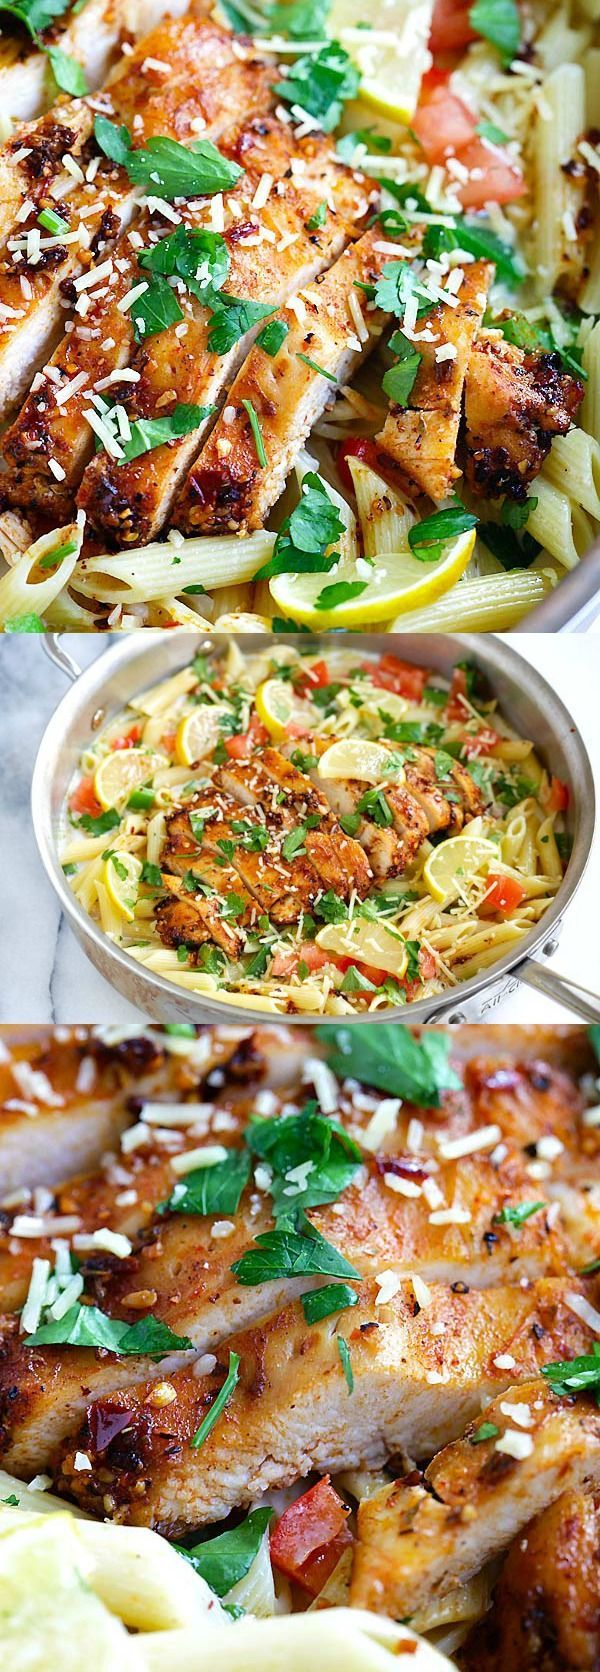 Blackened Chicken Pasta – Creamy pasta with spicy blackened spice chicken breast. Family friendly dinner has never been so good | http://rasamalaysia.com